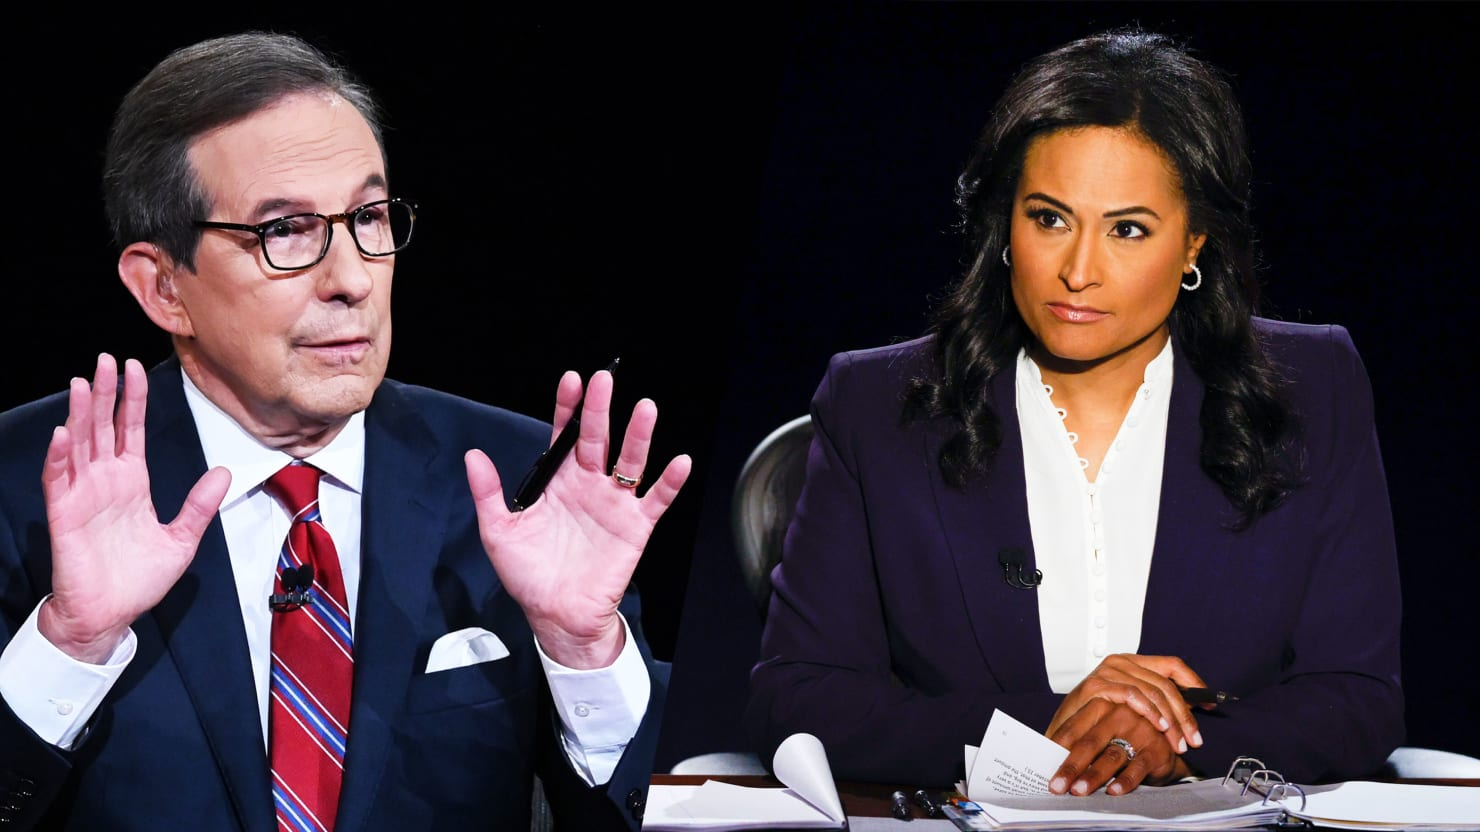 Chris Wallace Admits He's 'Jealous' of How Well Kristen Welker Did